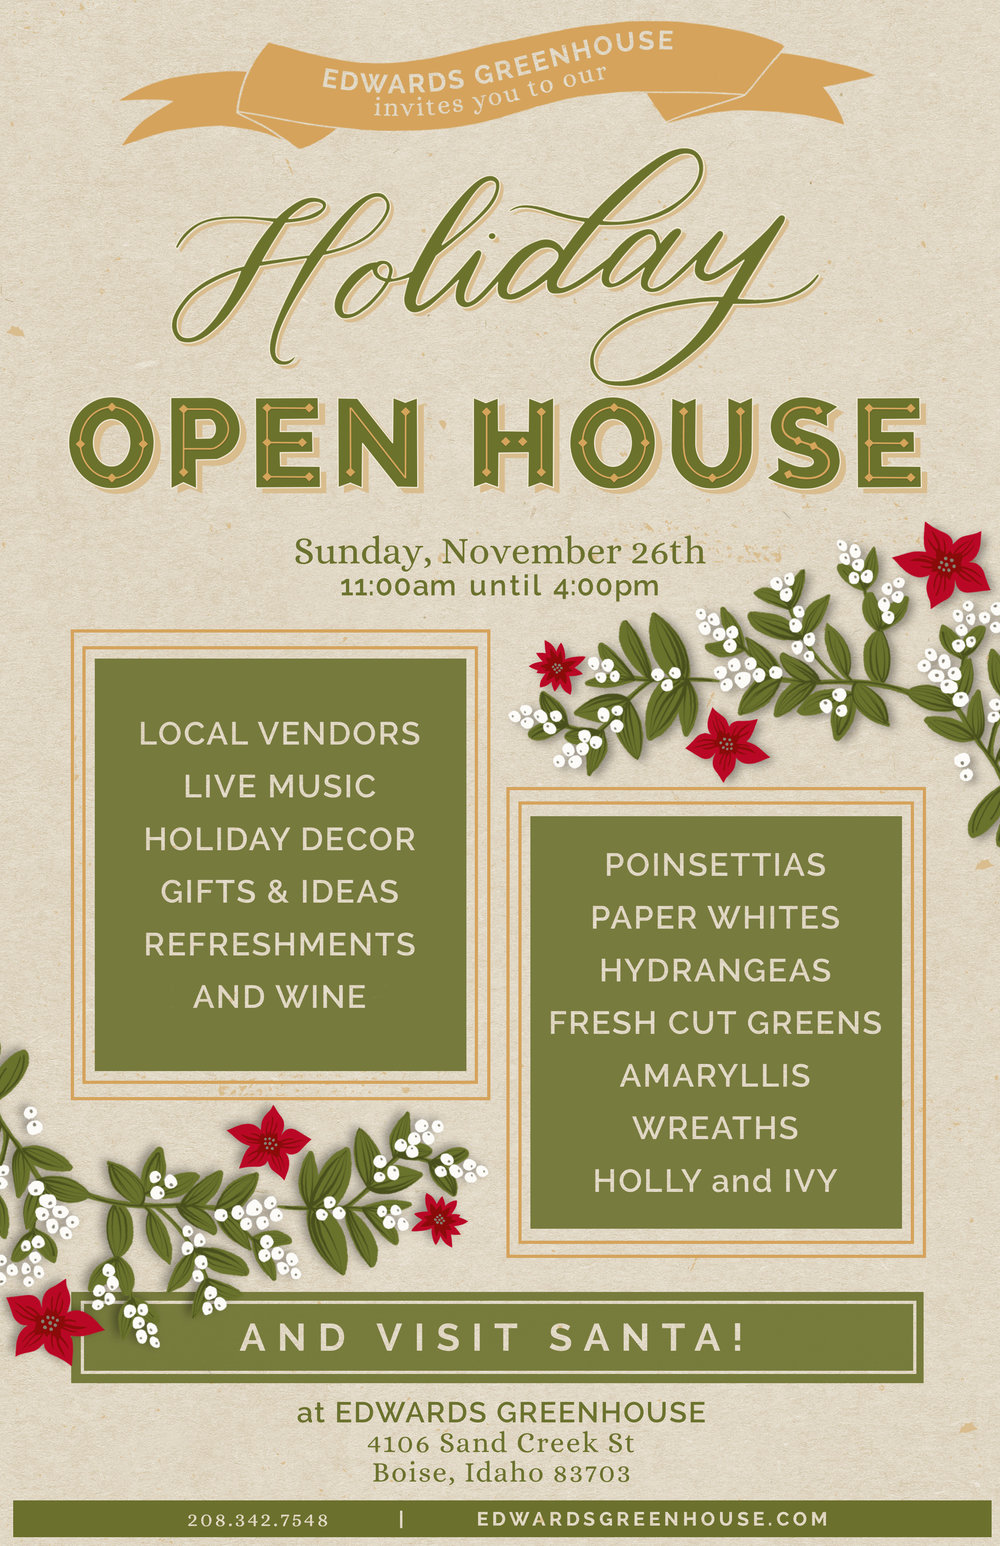 Holiday Open House Poster.jpg